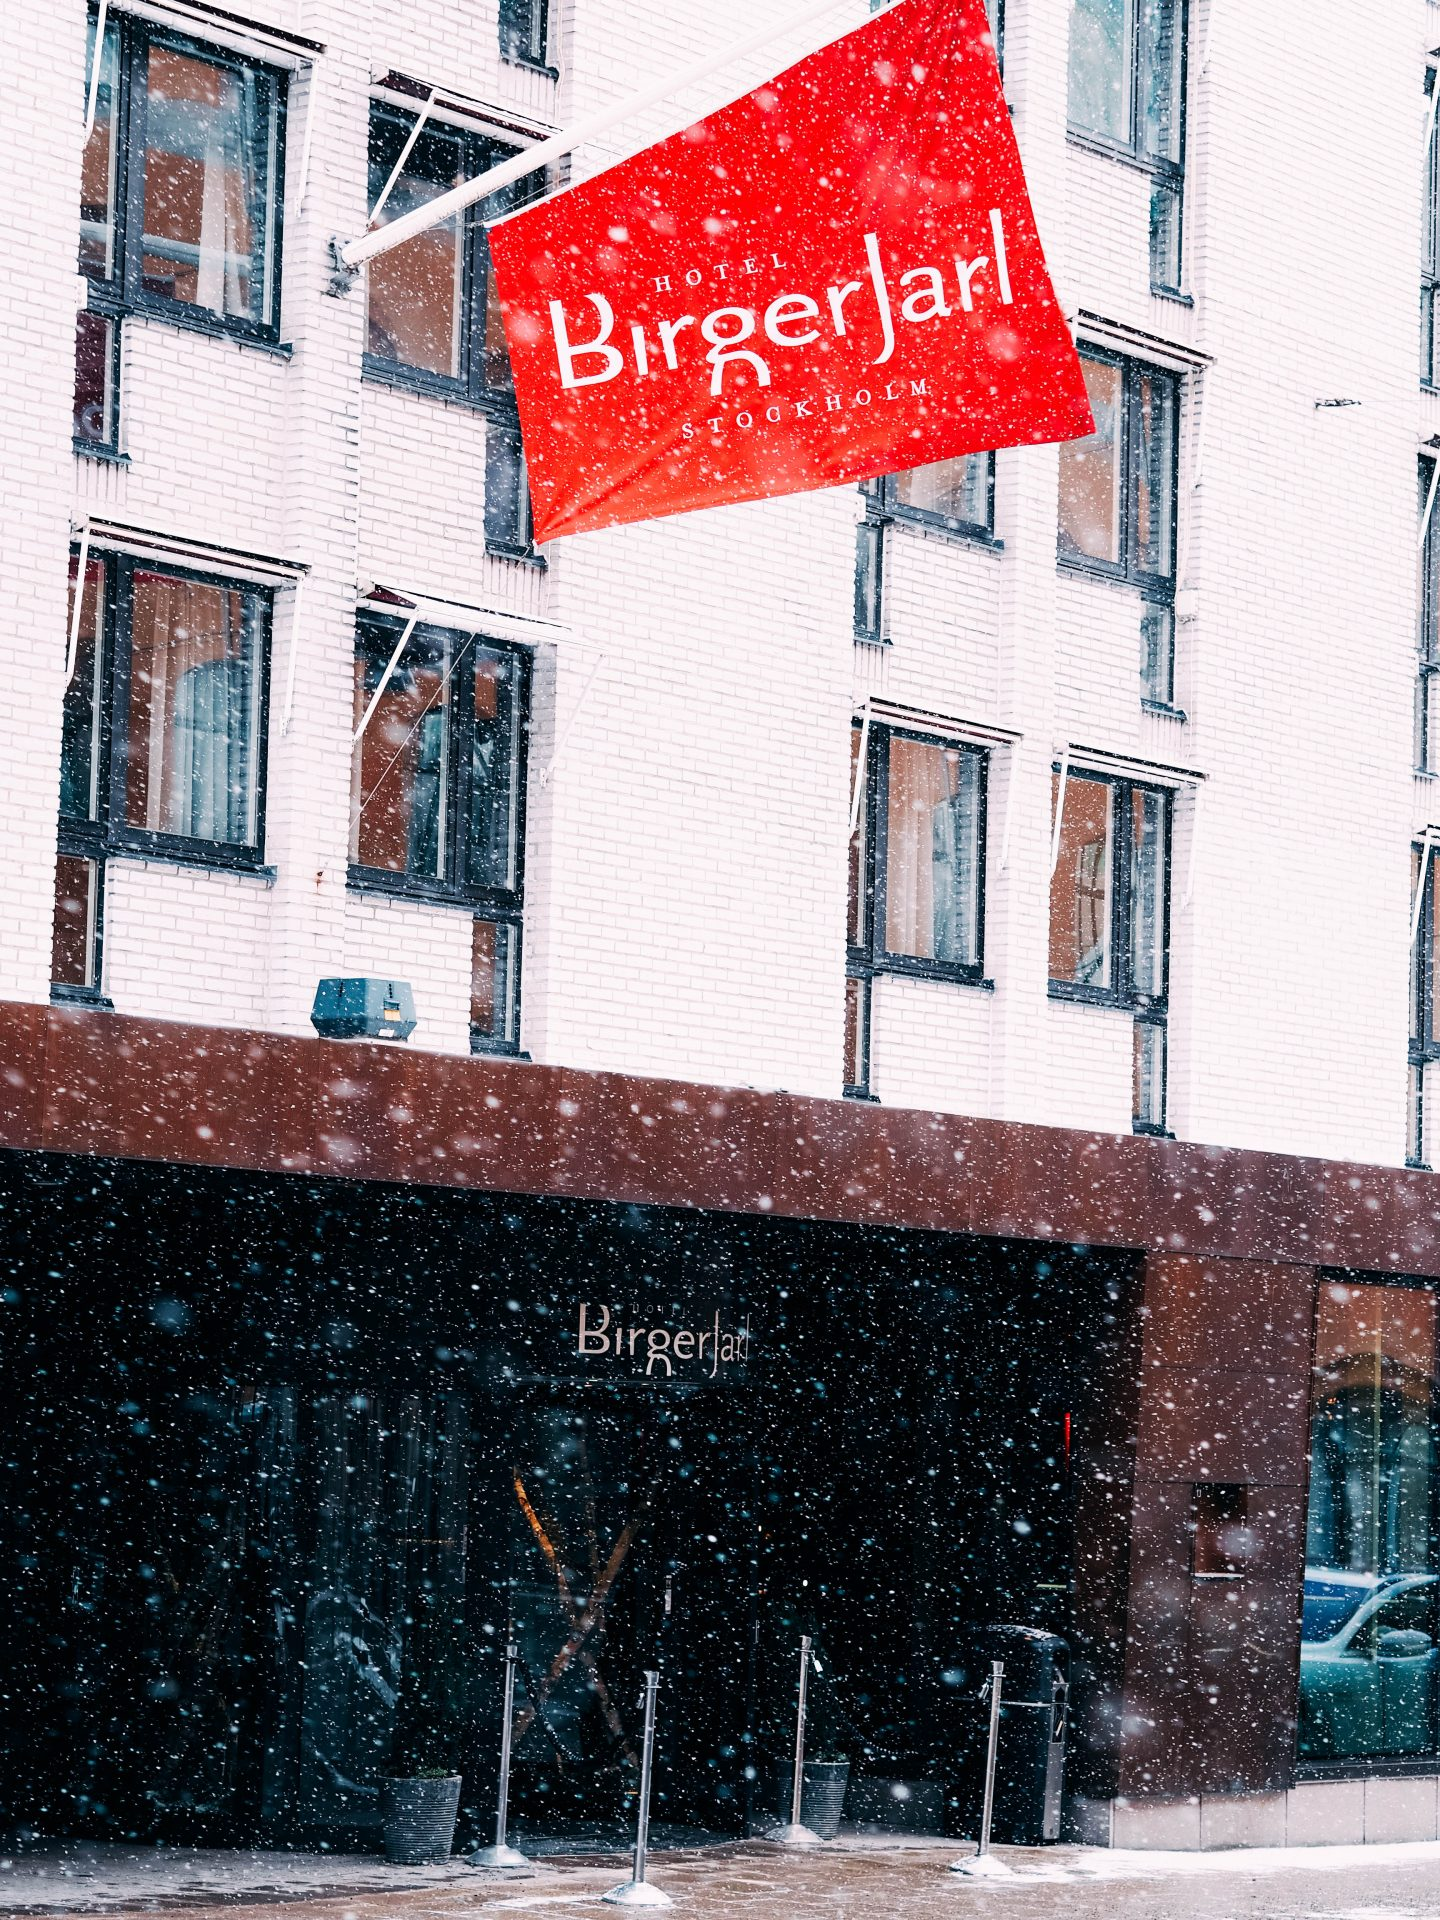 A 3 DAY STAY AT HOTEL BIRGER JARL